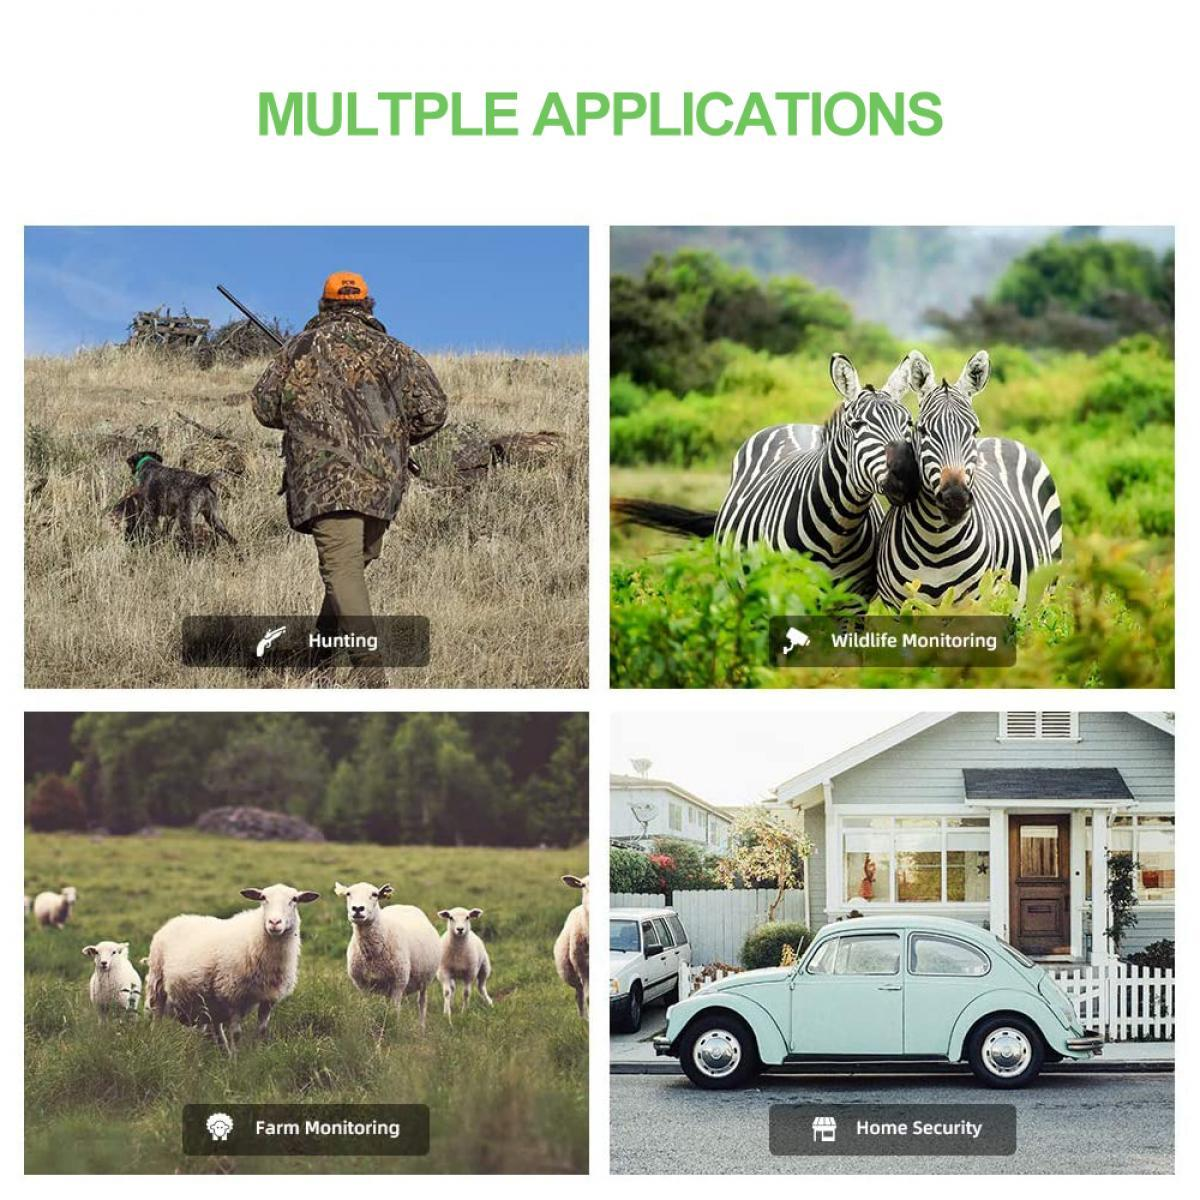 K & F KF-401F WiFi Trail Camera 5 Miljoen Sensor 24MP 1296 P HD Outdoor Wildlife Monitoring Waterdichte Nacht Infrarood Vision jacht Camera